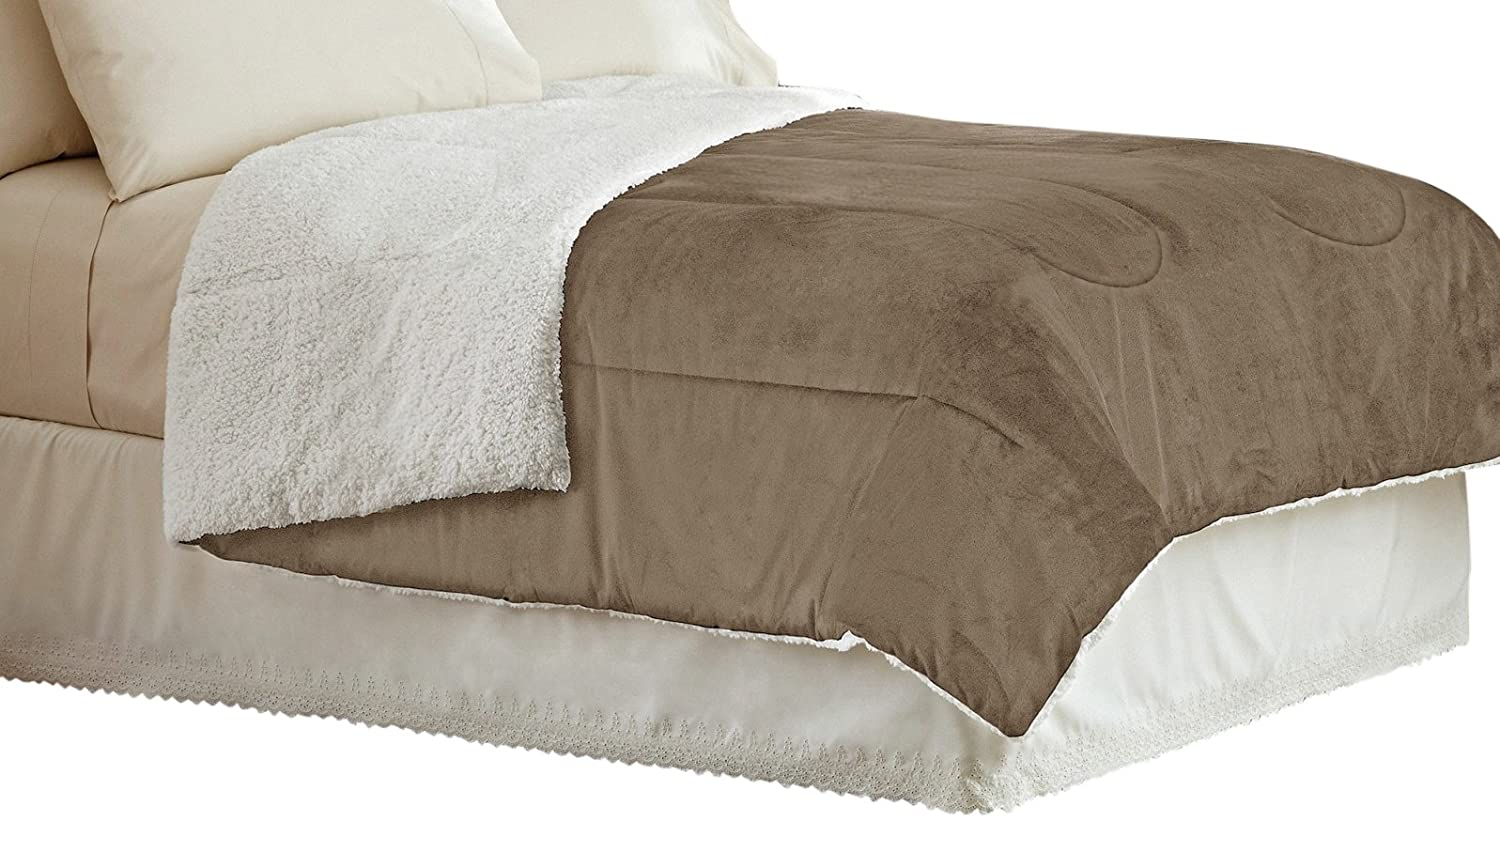 Idea Nuova Warmth Sherpa Comforter Chocolate, Full//Queen